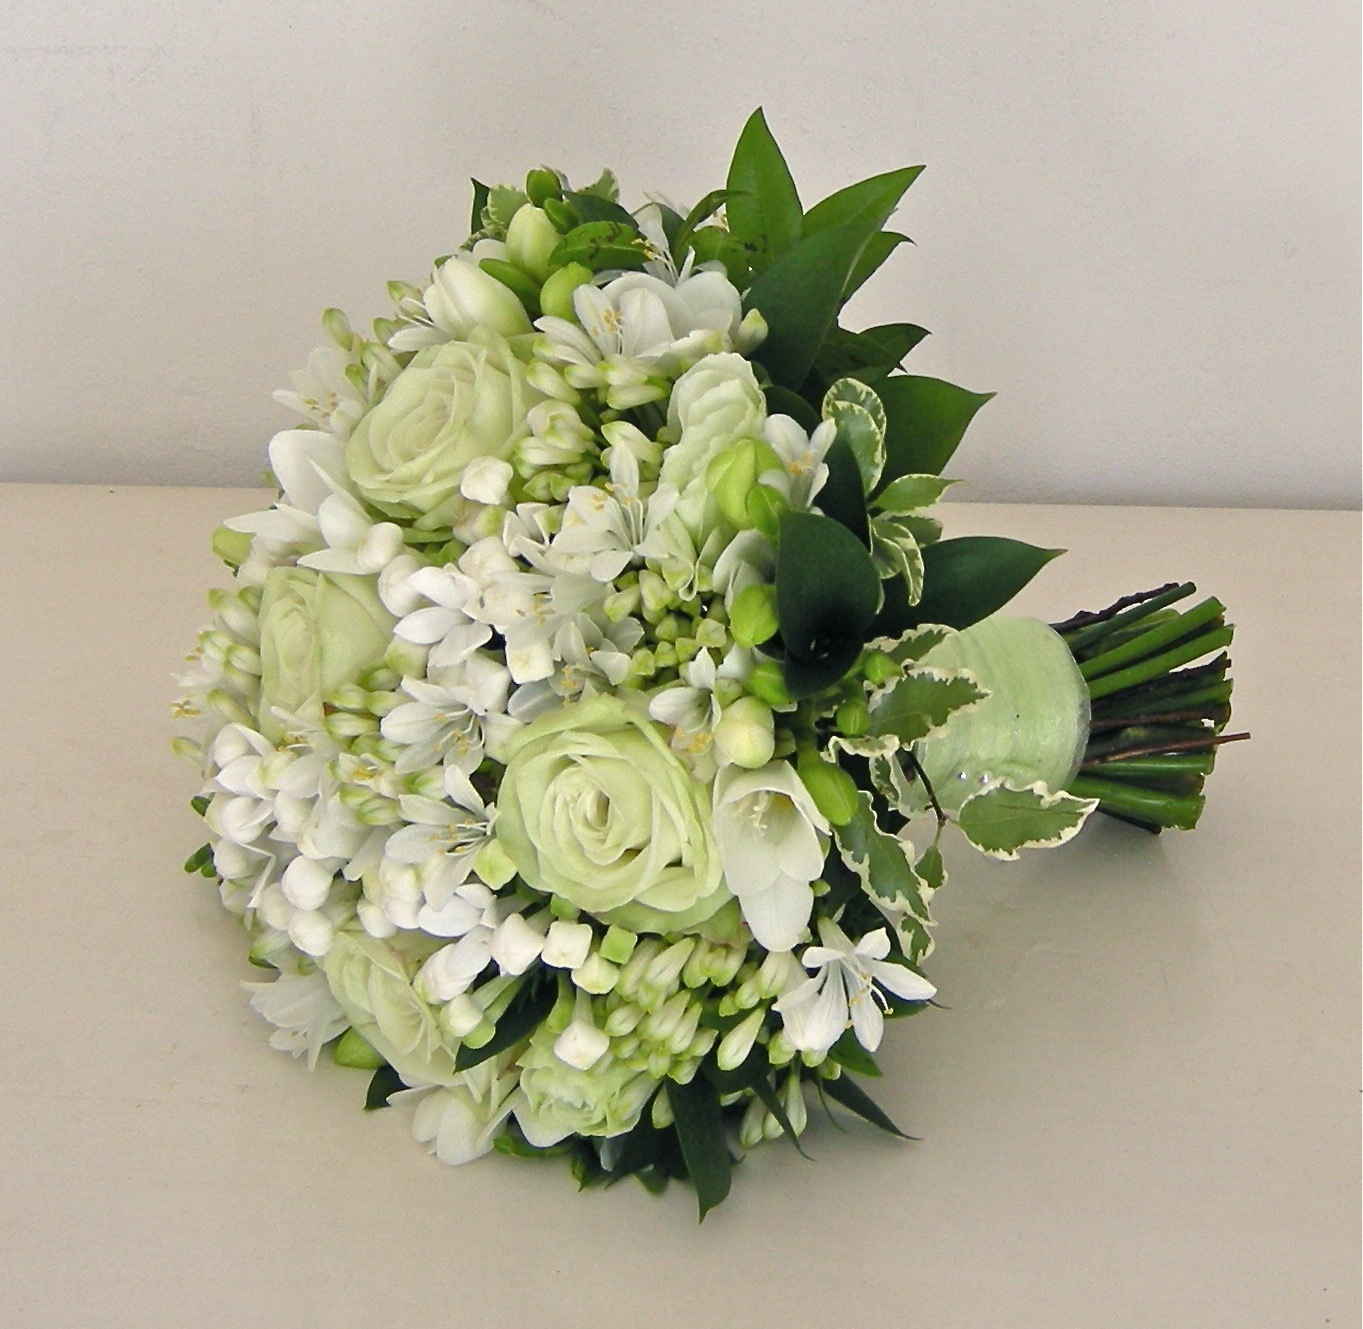 Flowers Online 2018 » lime green flowers for bouquets   Flowers Online